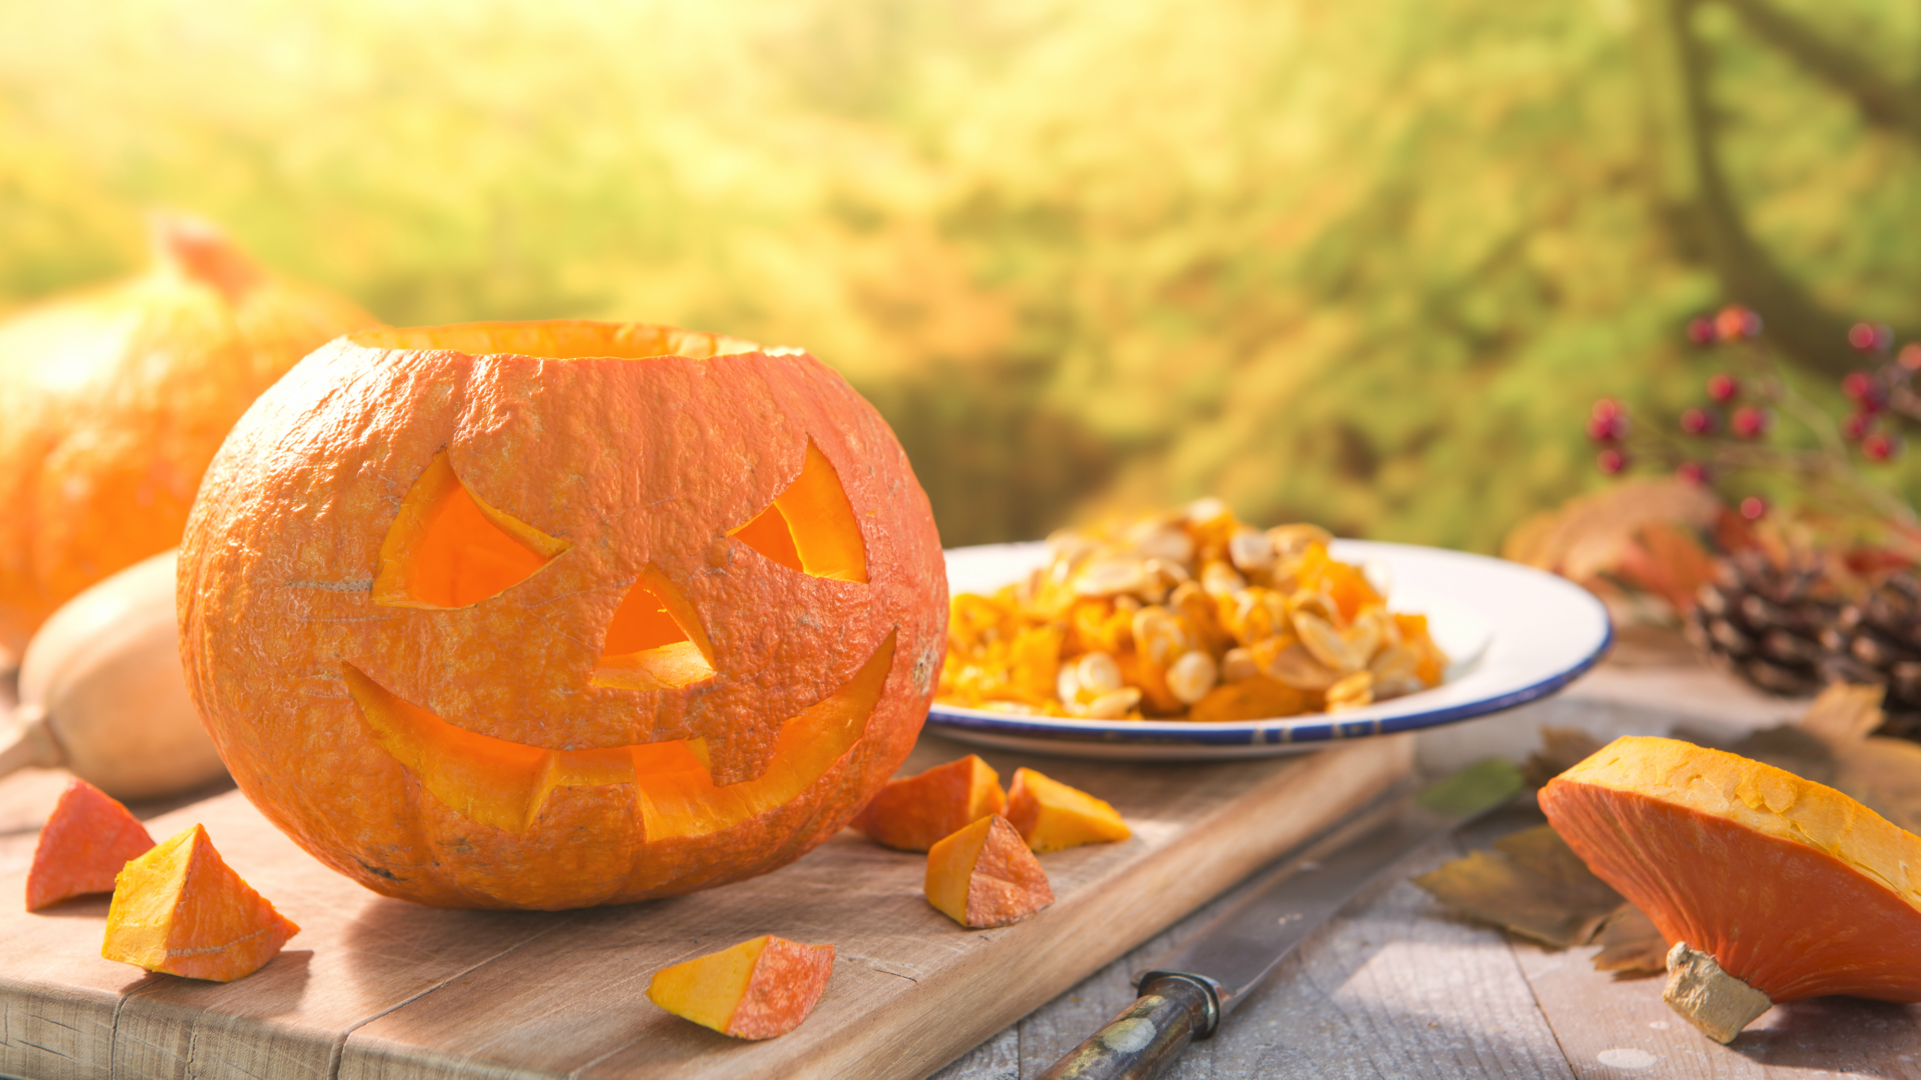 These websites offer amazing pumpkin carving patterns that cost